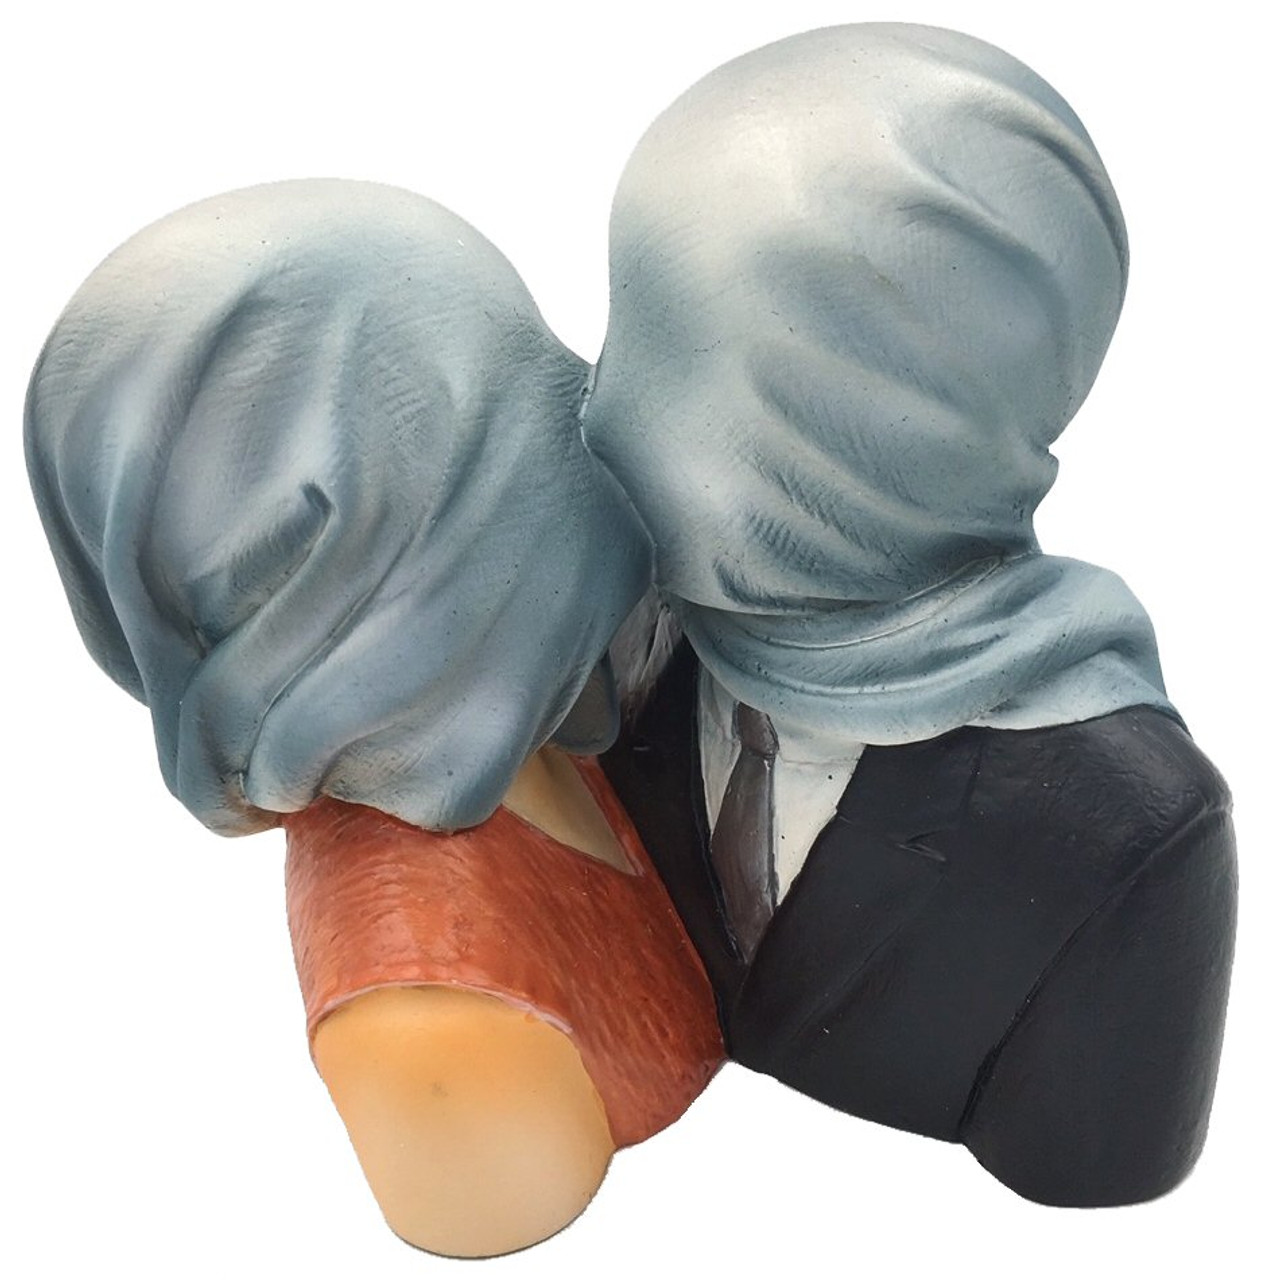 0b9910e73f550 Lovers with Covered Heads Les Amants Statue by Magritte - Museum Art ...